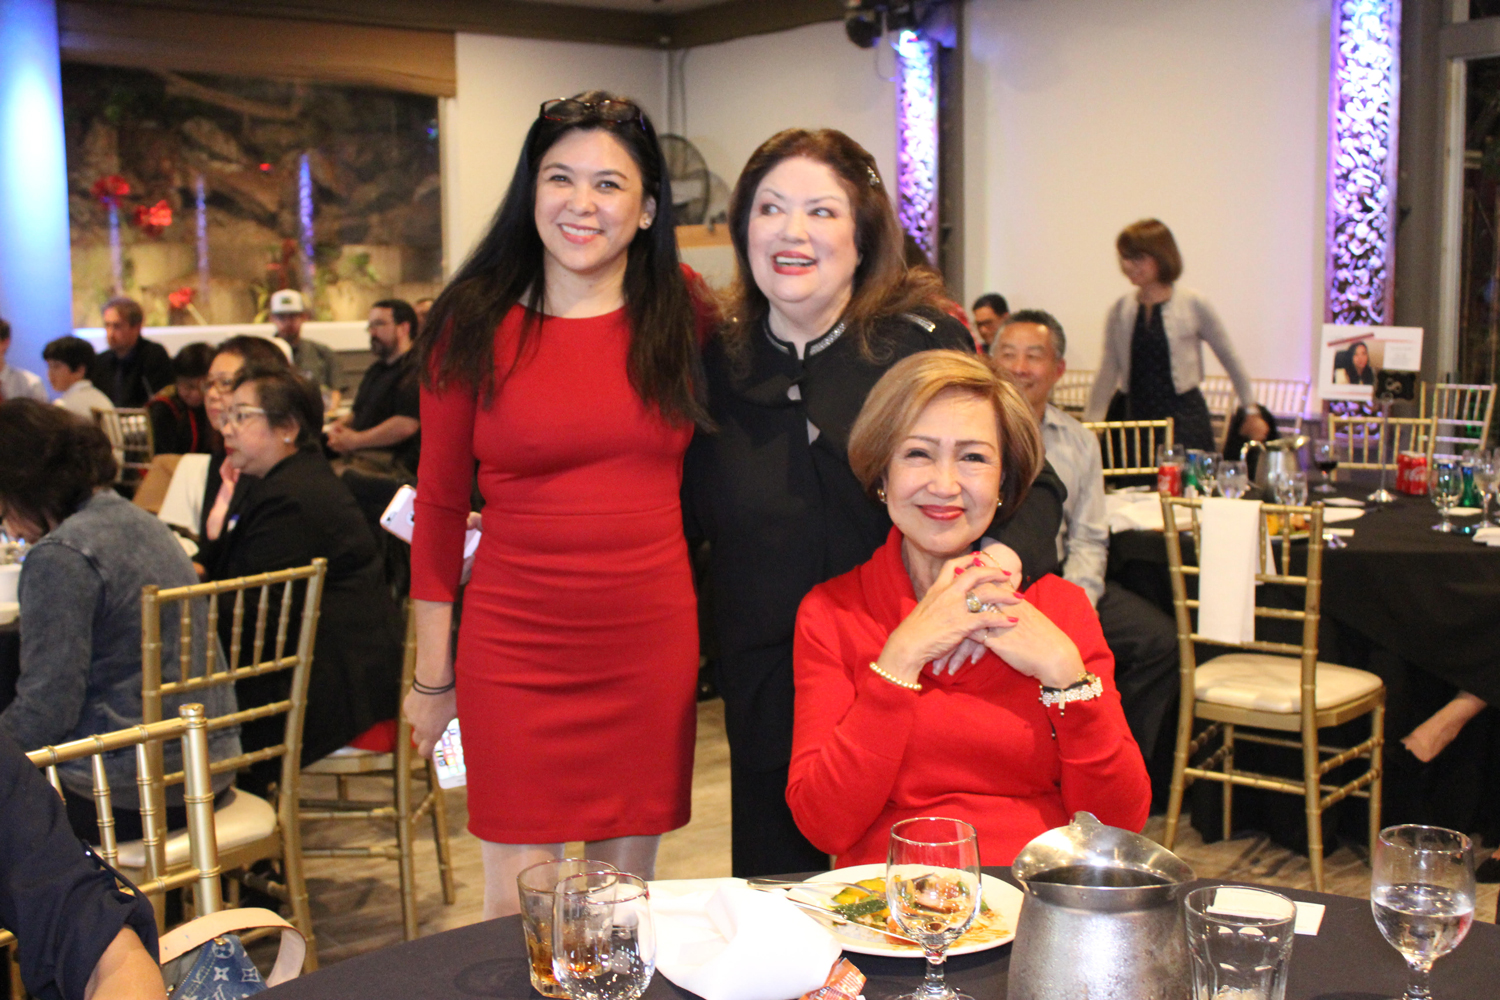 Candidate with mother, Marilita Osmeña, and campaign volunteer Gloria Tanner. (Photo by Vivian Abellana)